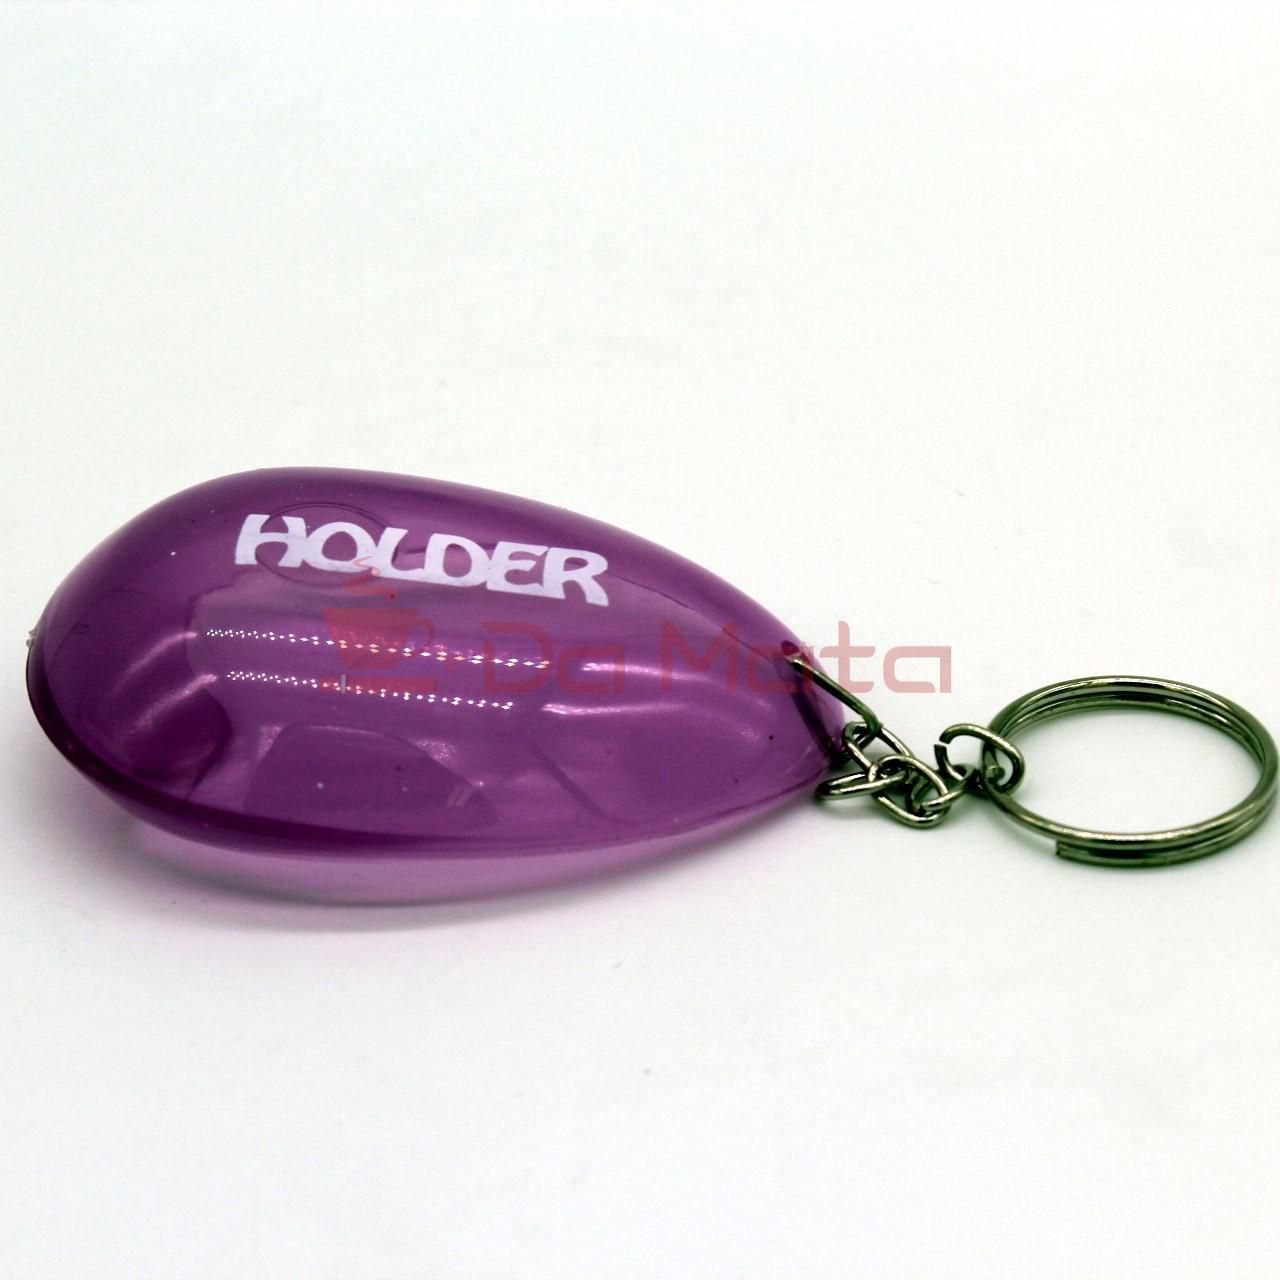 Cuia canoa Holder- Chaveiro